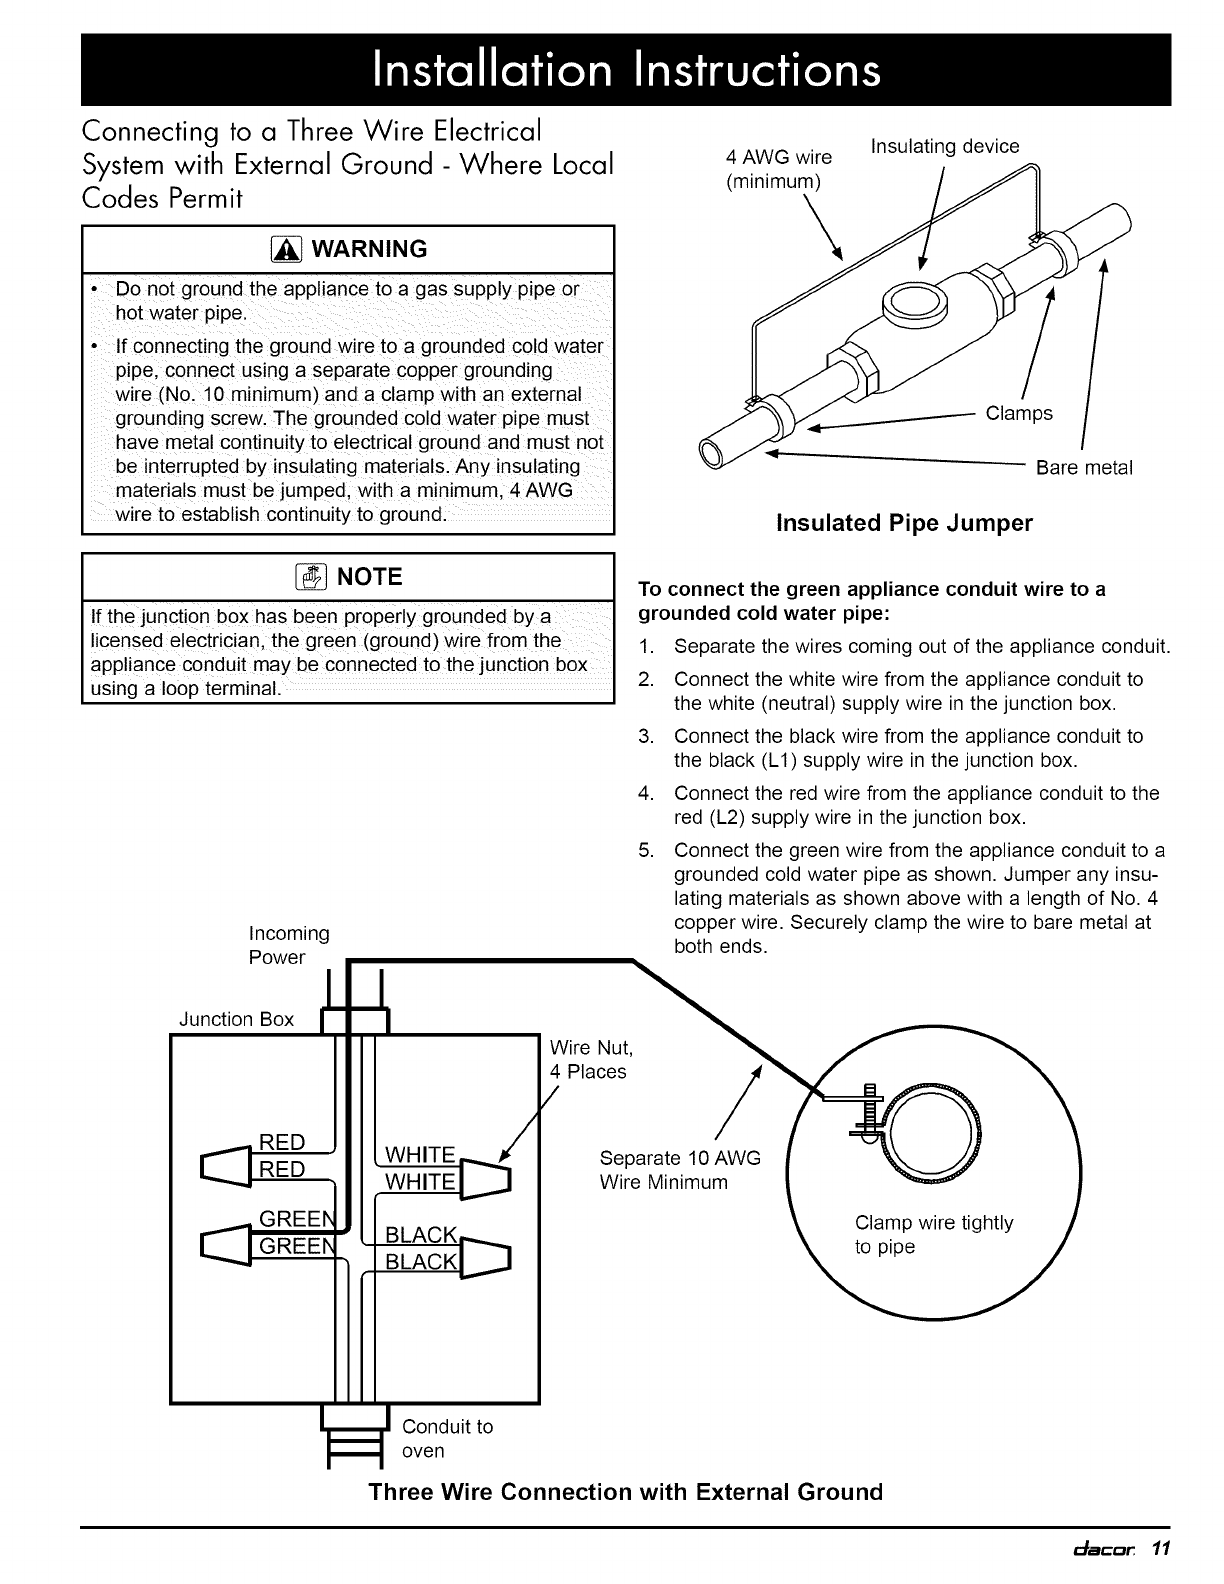 Dacor Eord230b User Manual Wall Oven Manuals And Guides 1006374l Wiring Diagram Connecting To A Three Wire Electrical